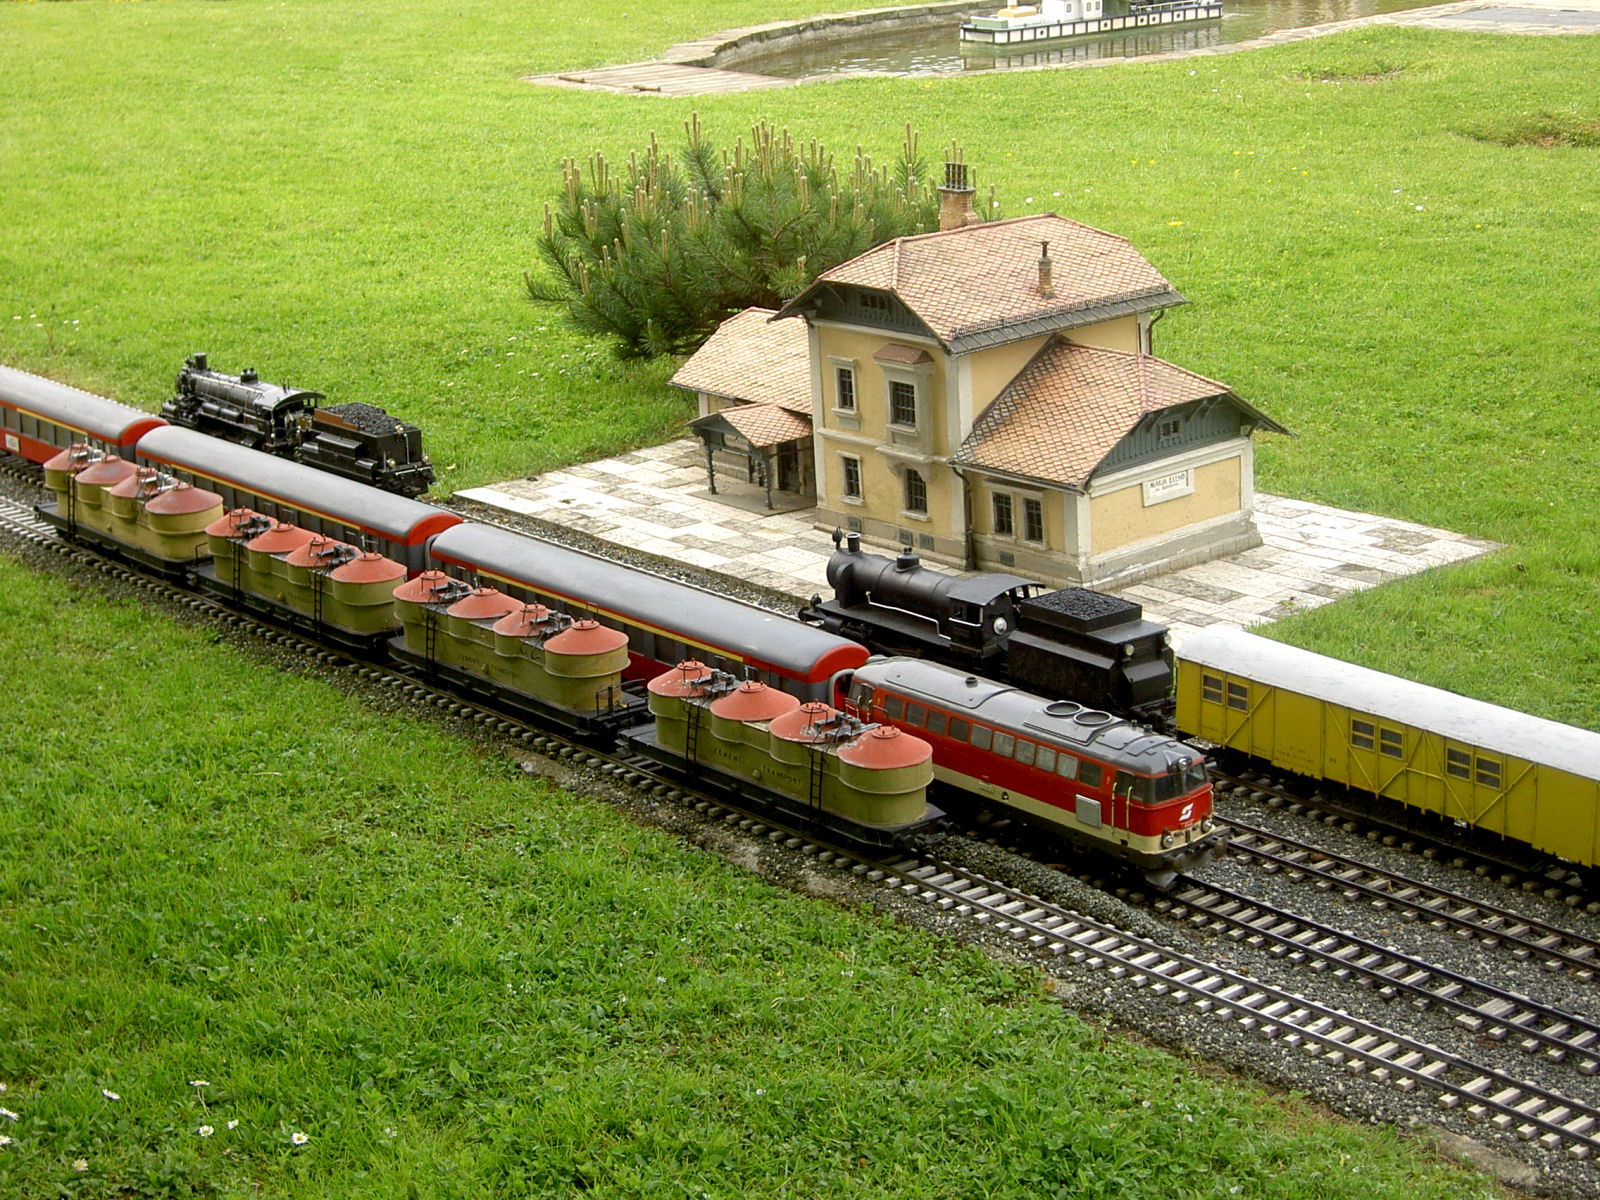 Model of the Maria Ellend train station at Minimundus, Klagenfurt, Austria